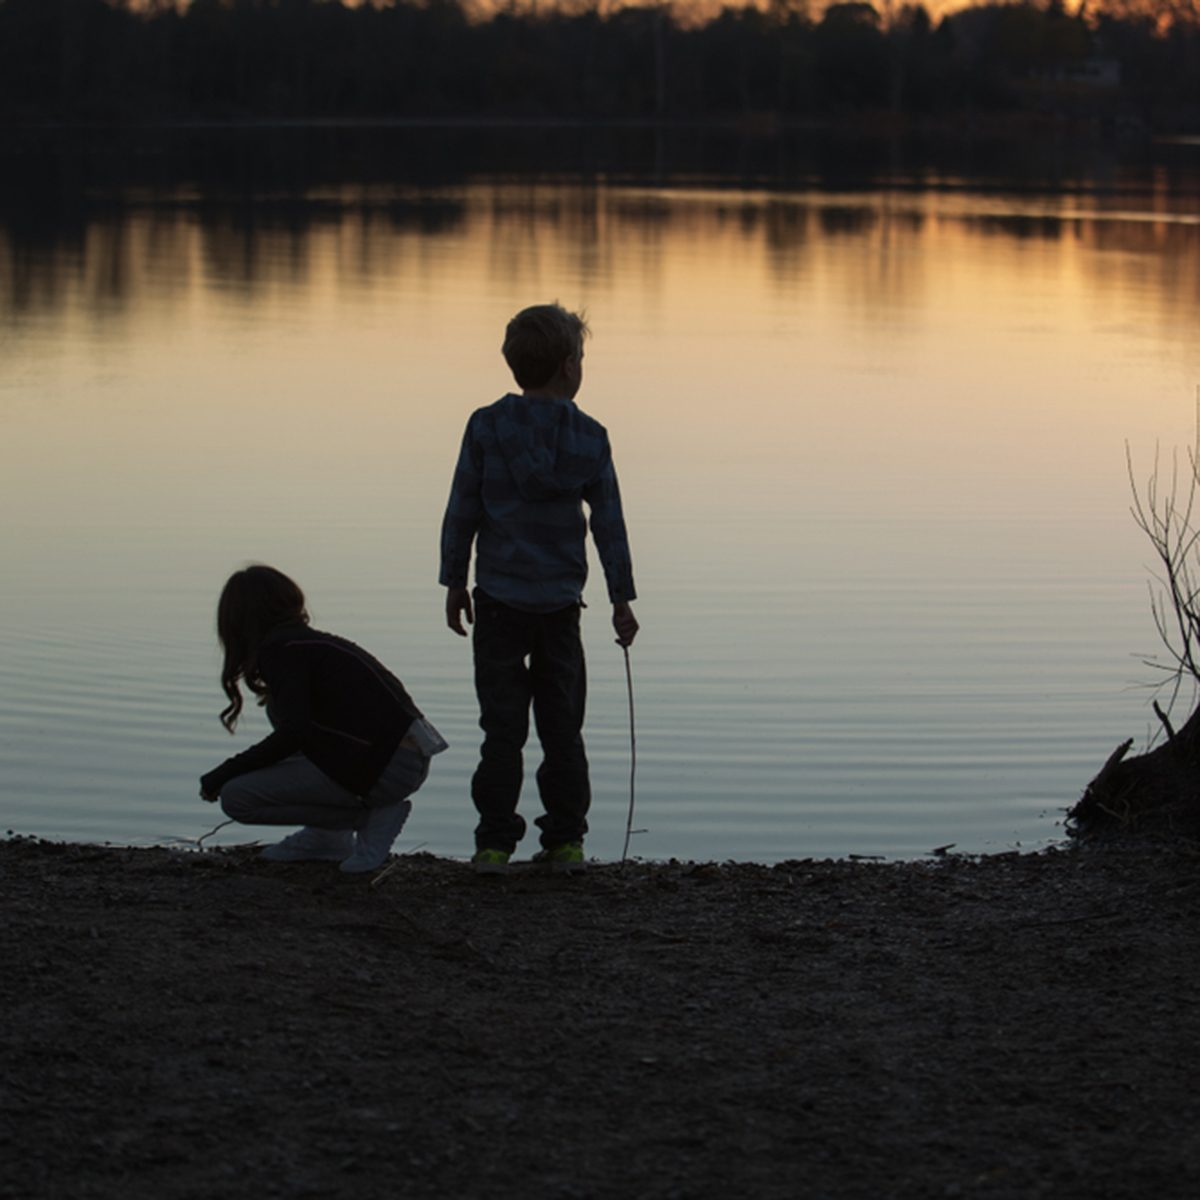 Silhouette of kids playing near the water on sunset